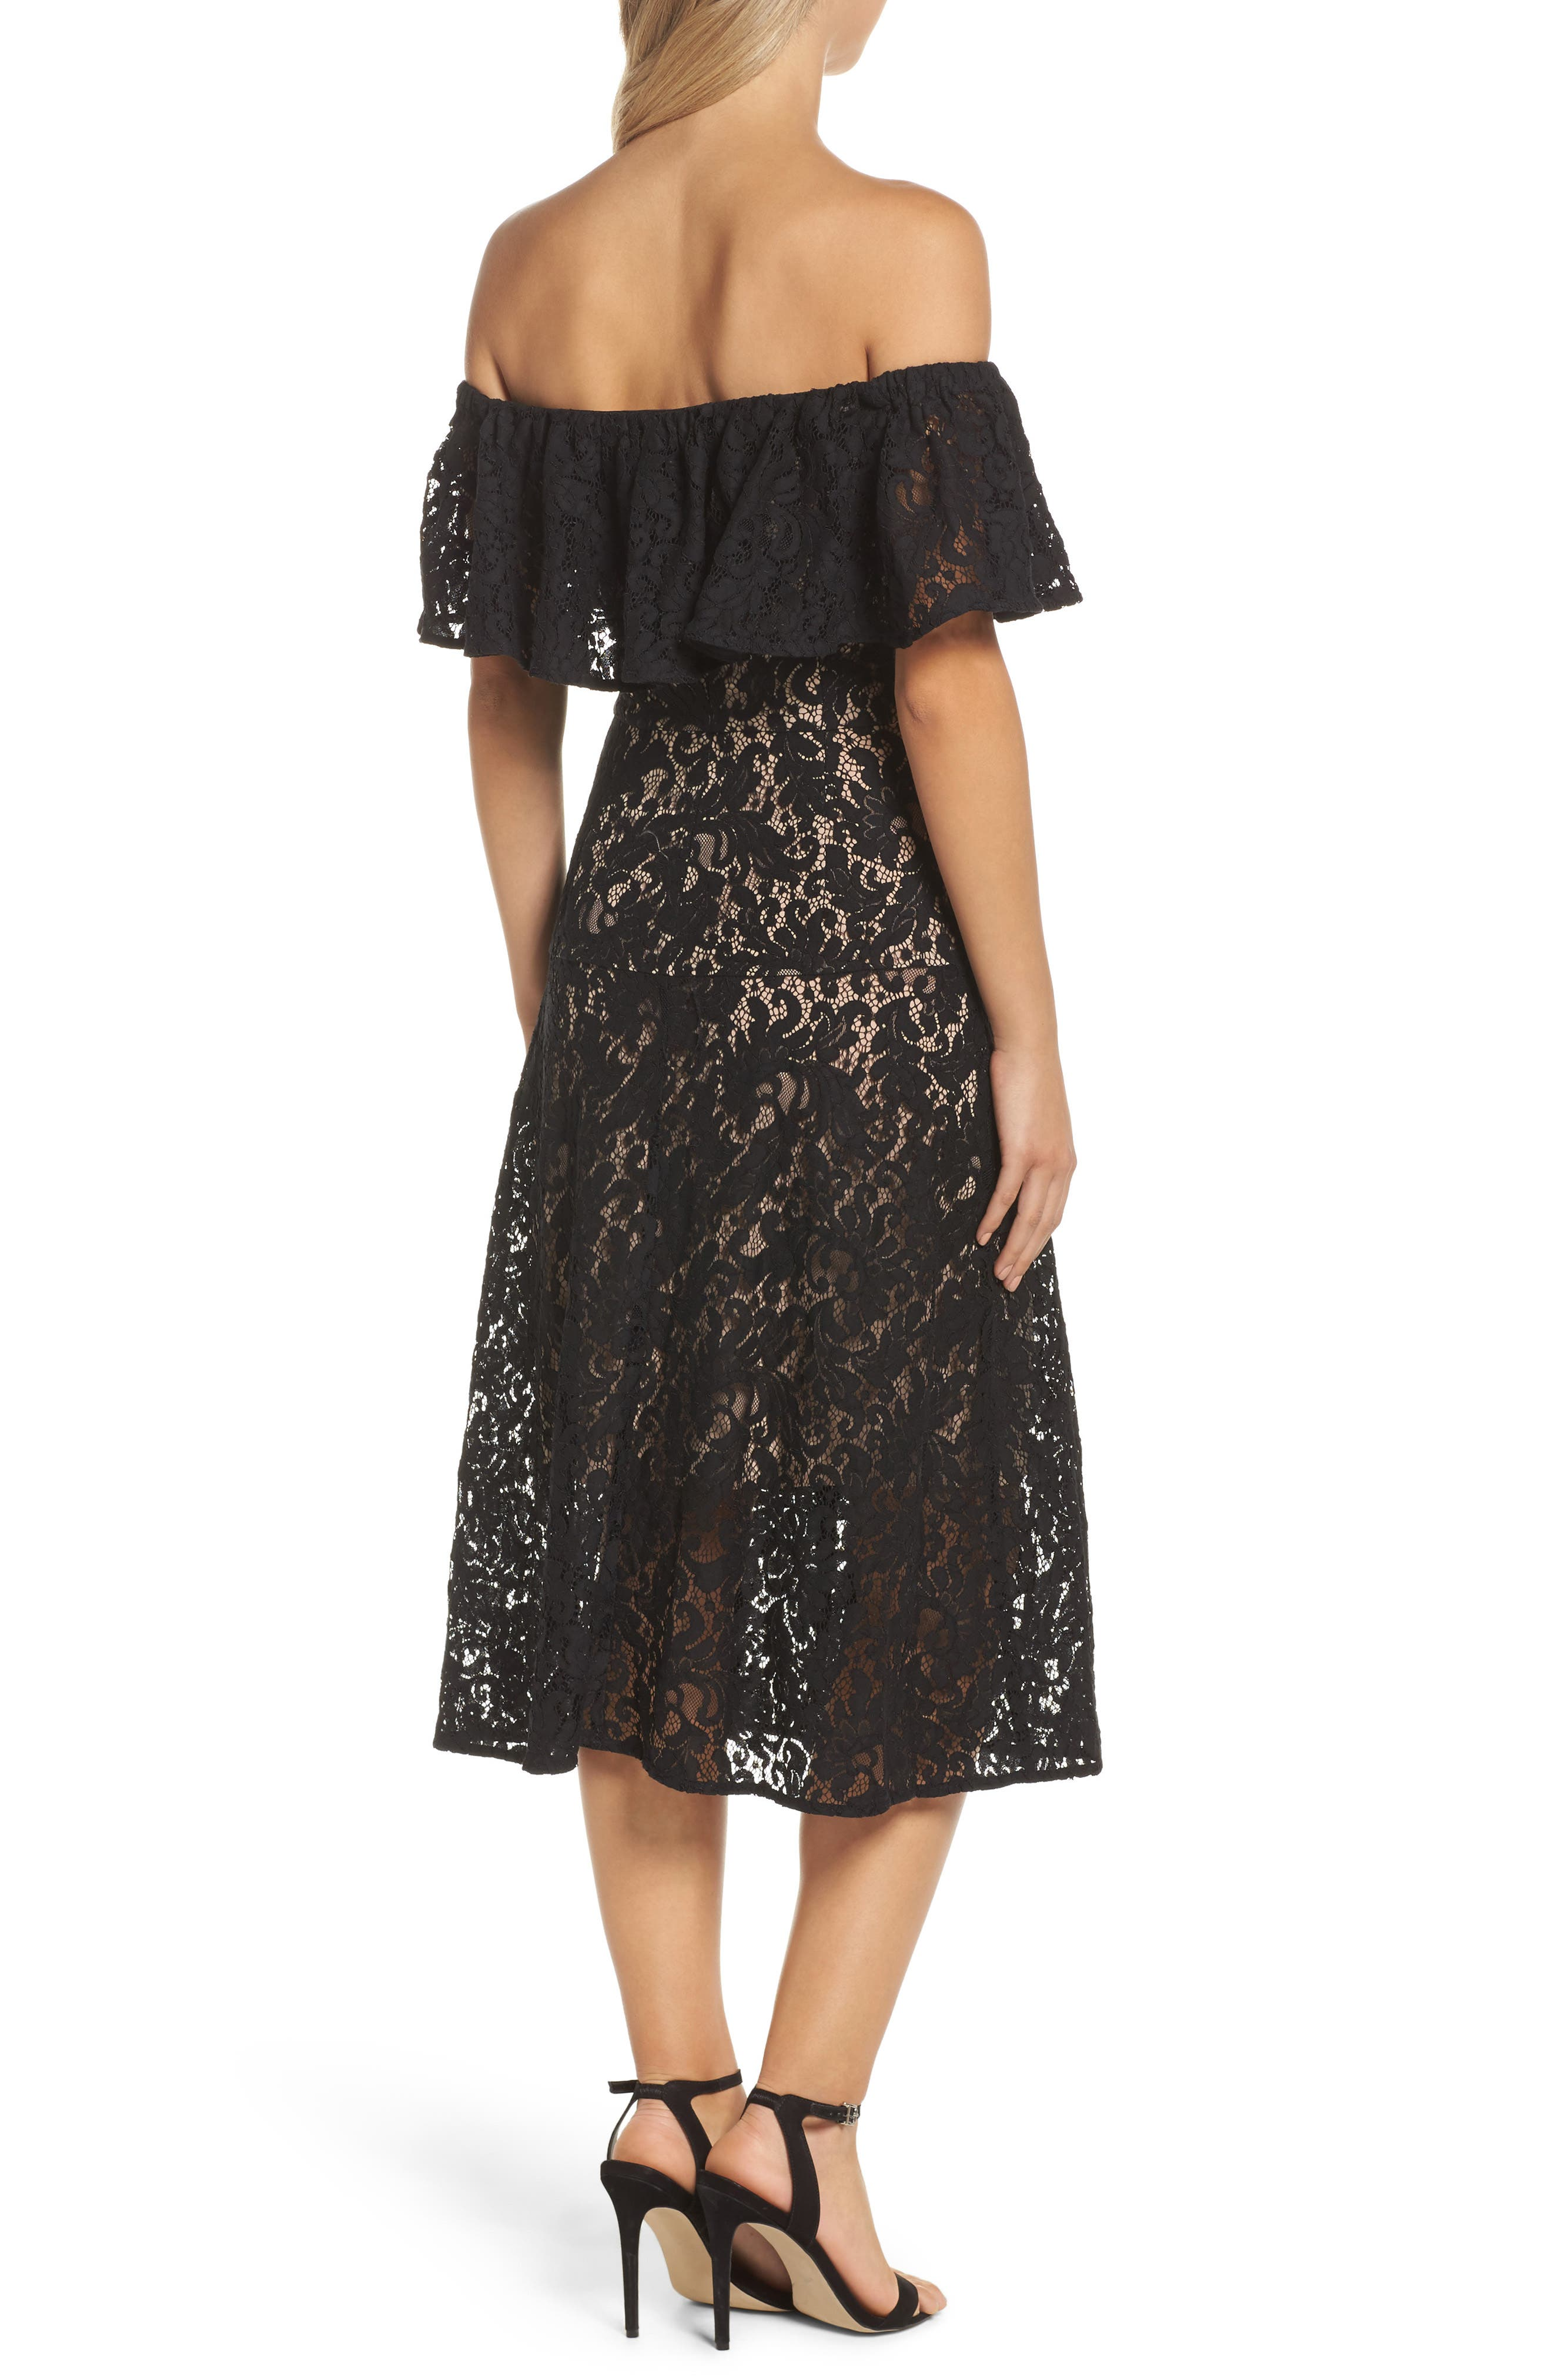 Sunday Silence Lace Off the Shoulder Dress,                             Alternate thumbnail 2, color,                             Black